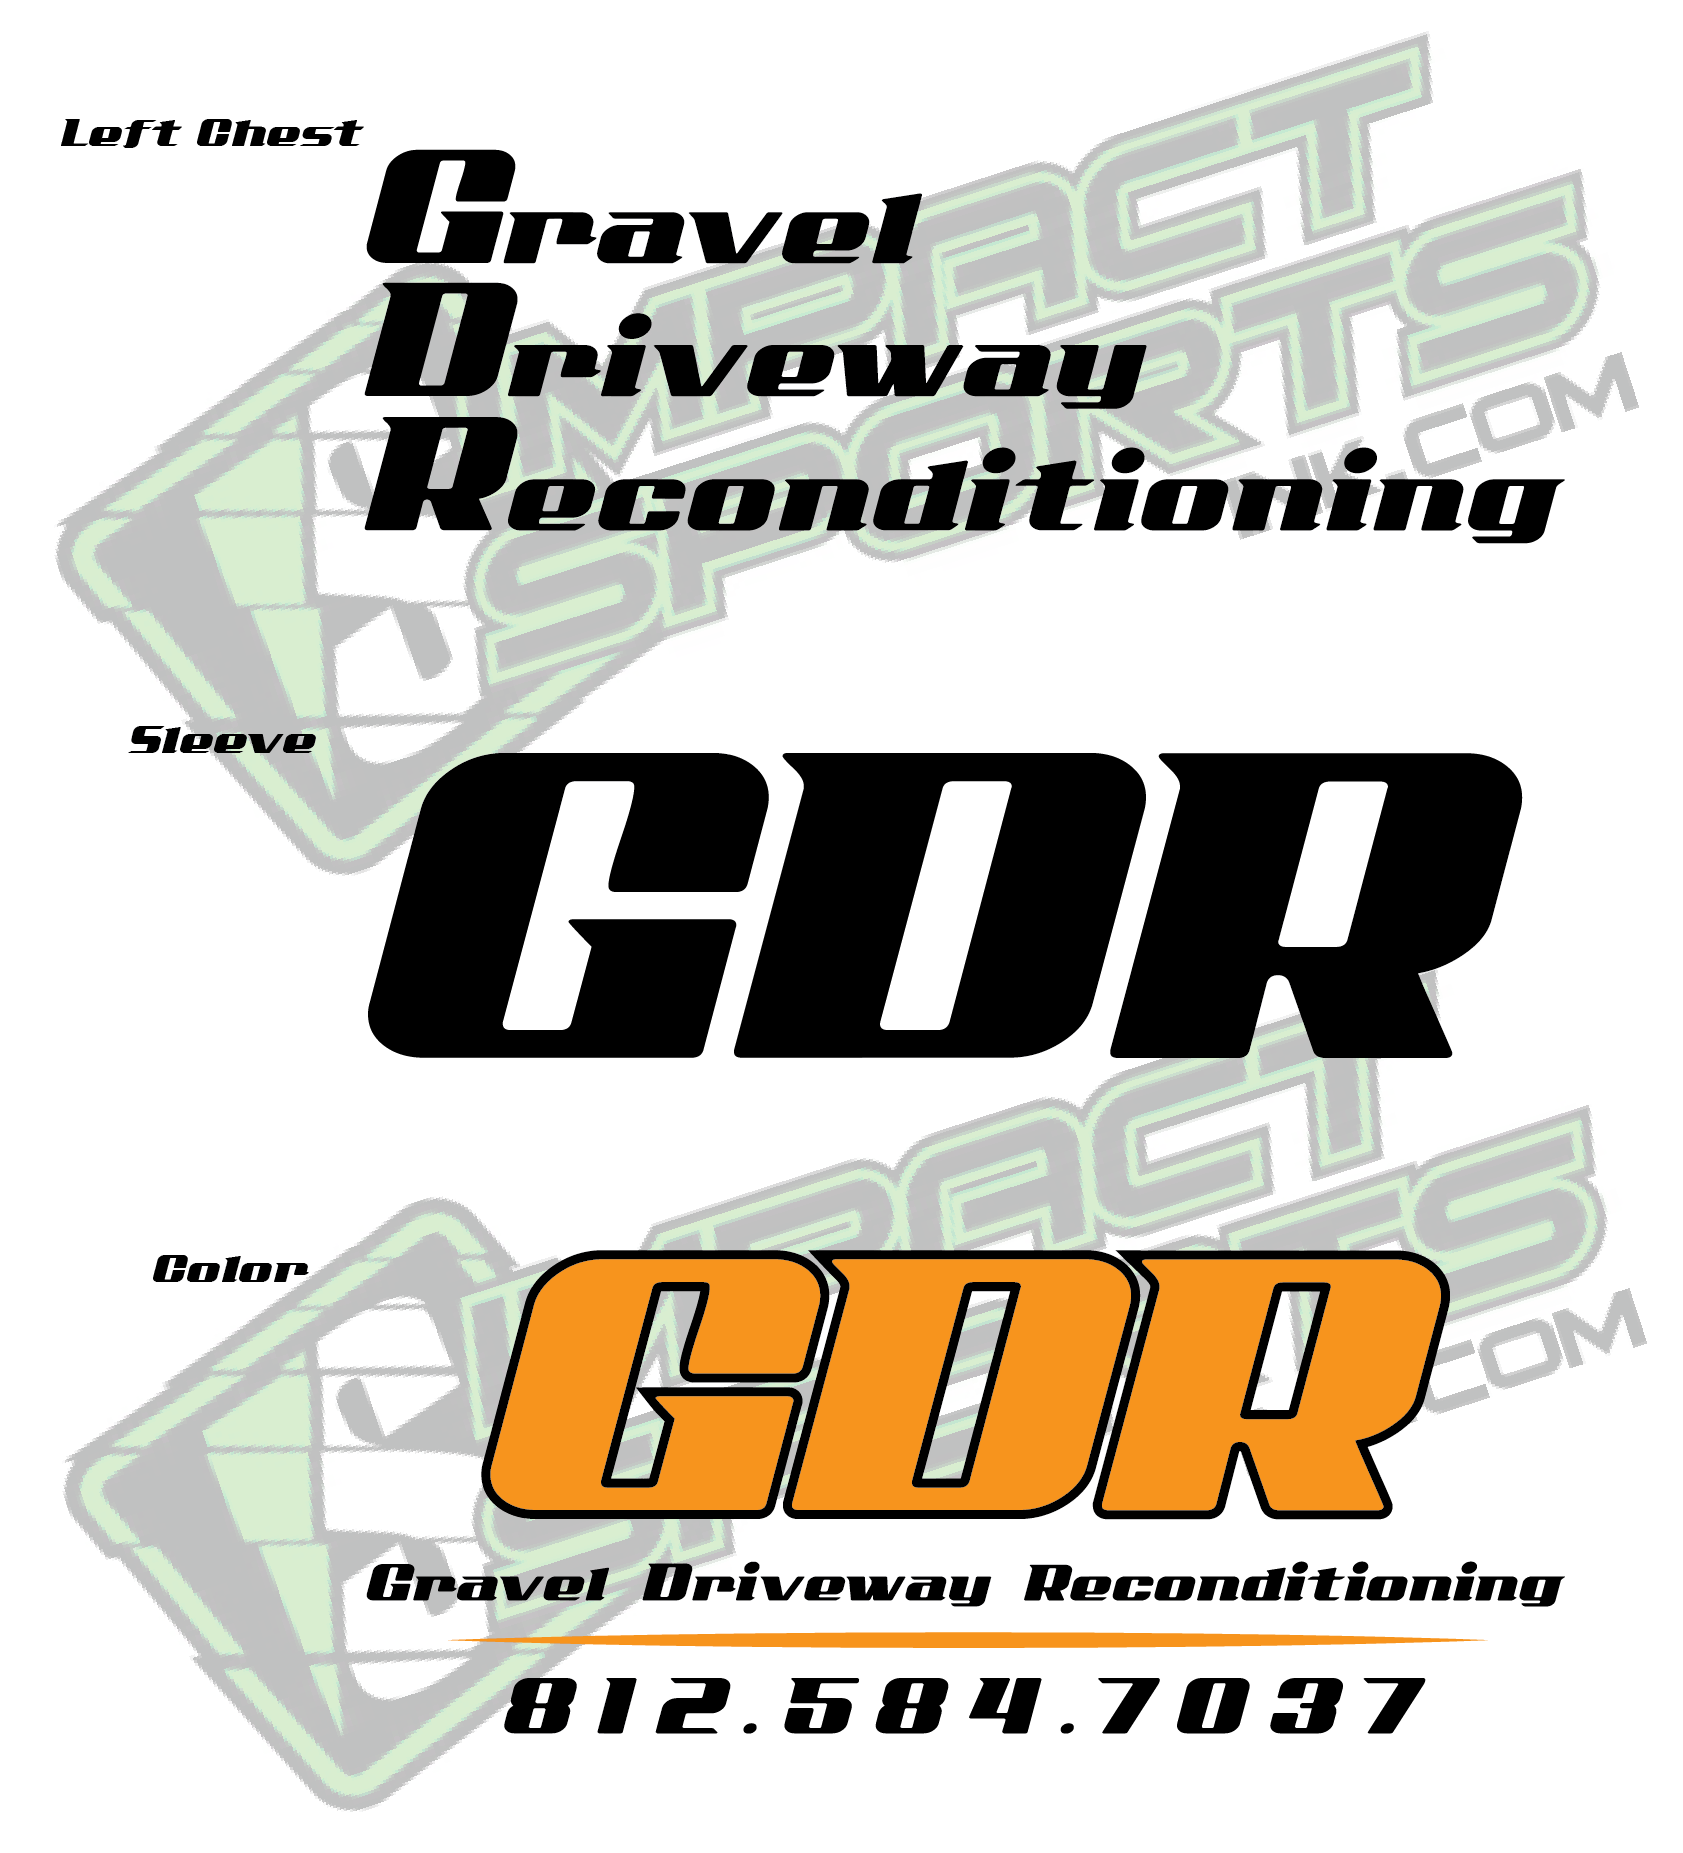 Gravel Drivway Reconditioning (web)-01